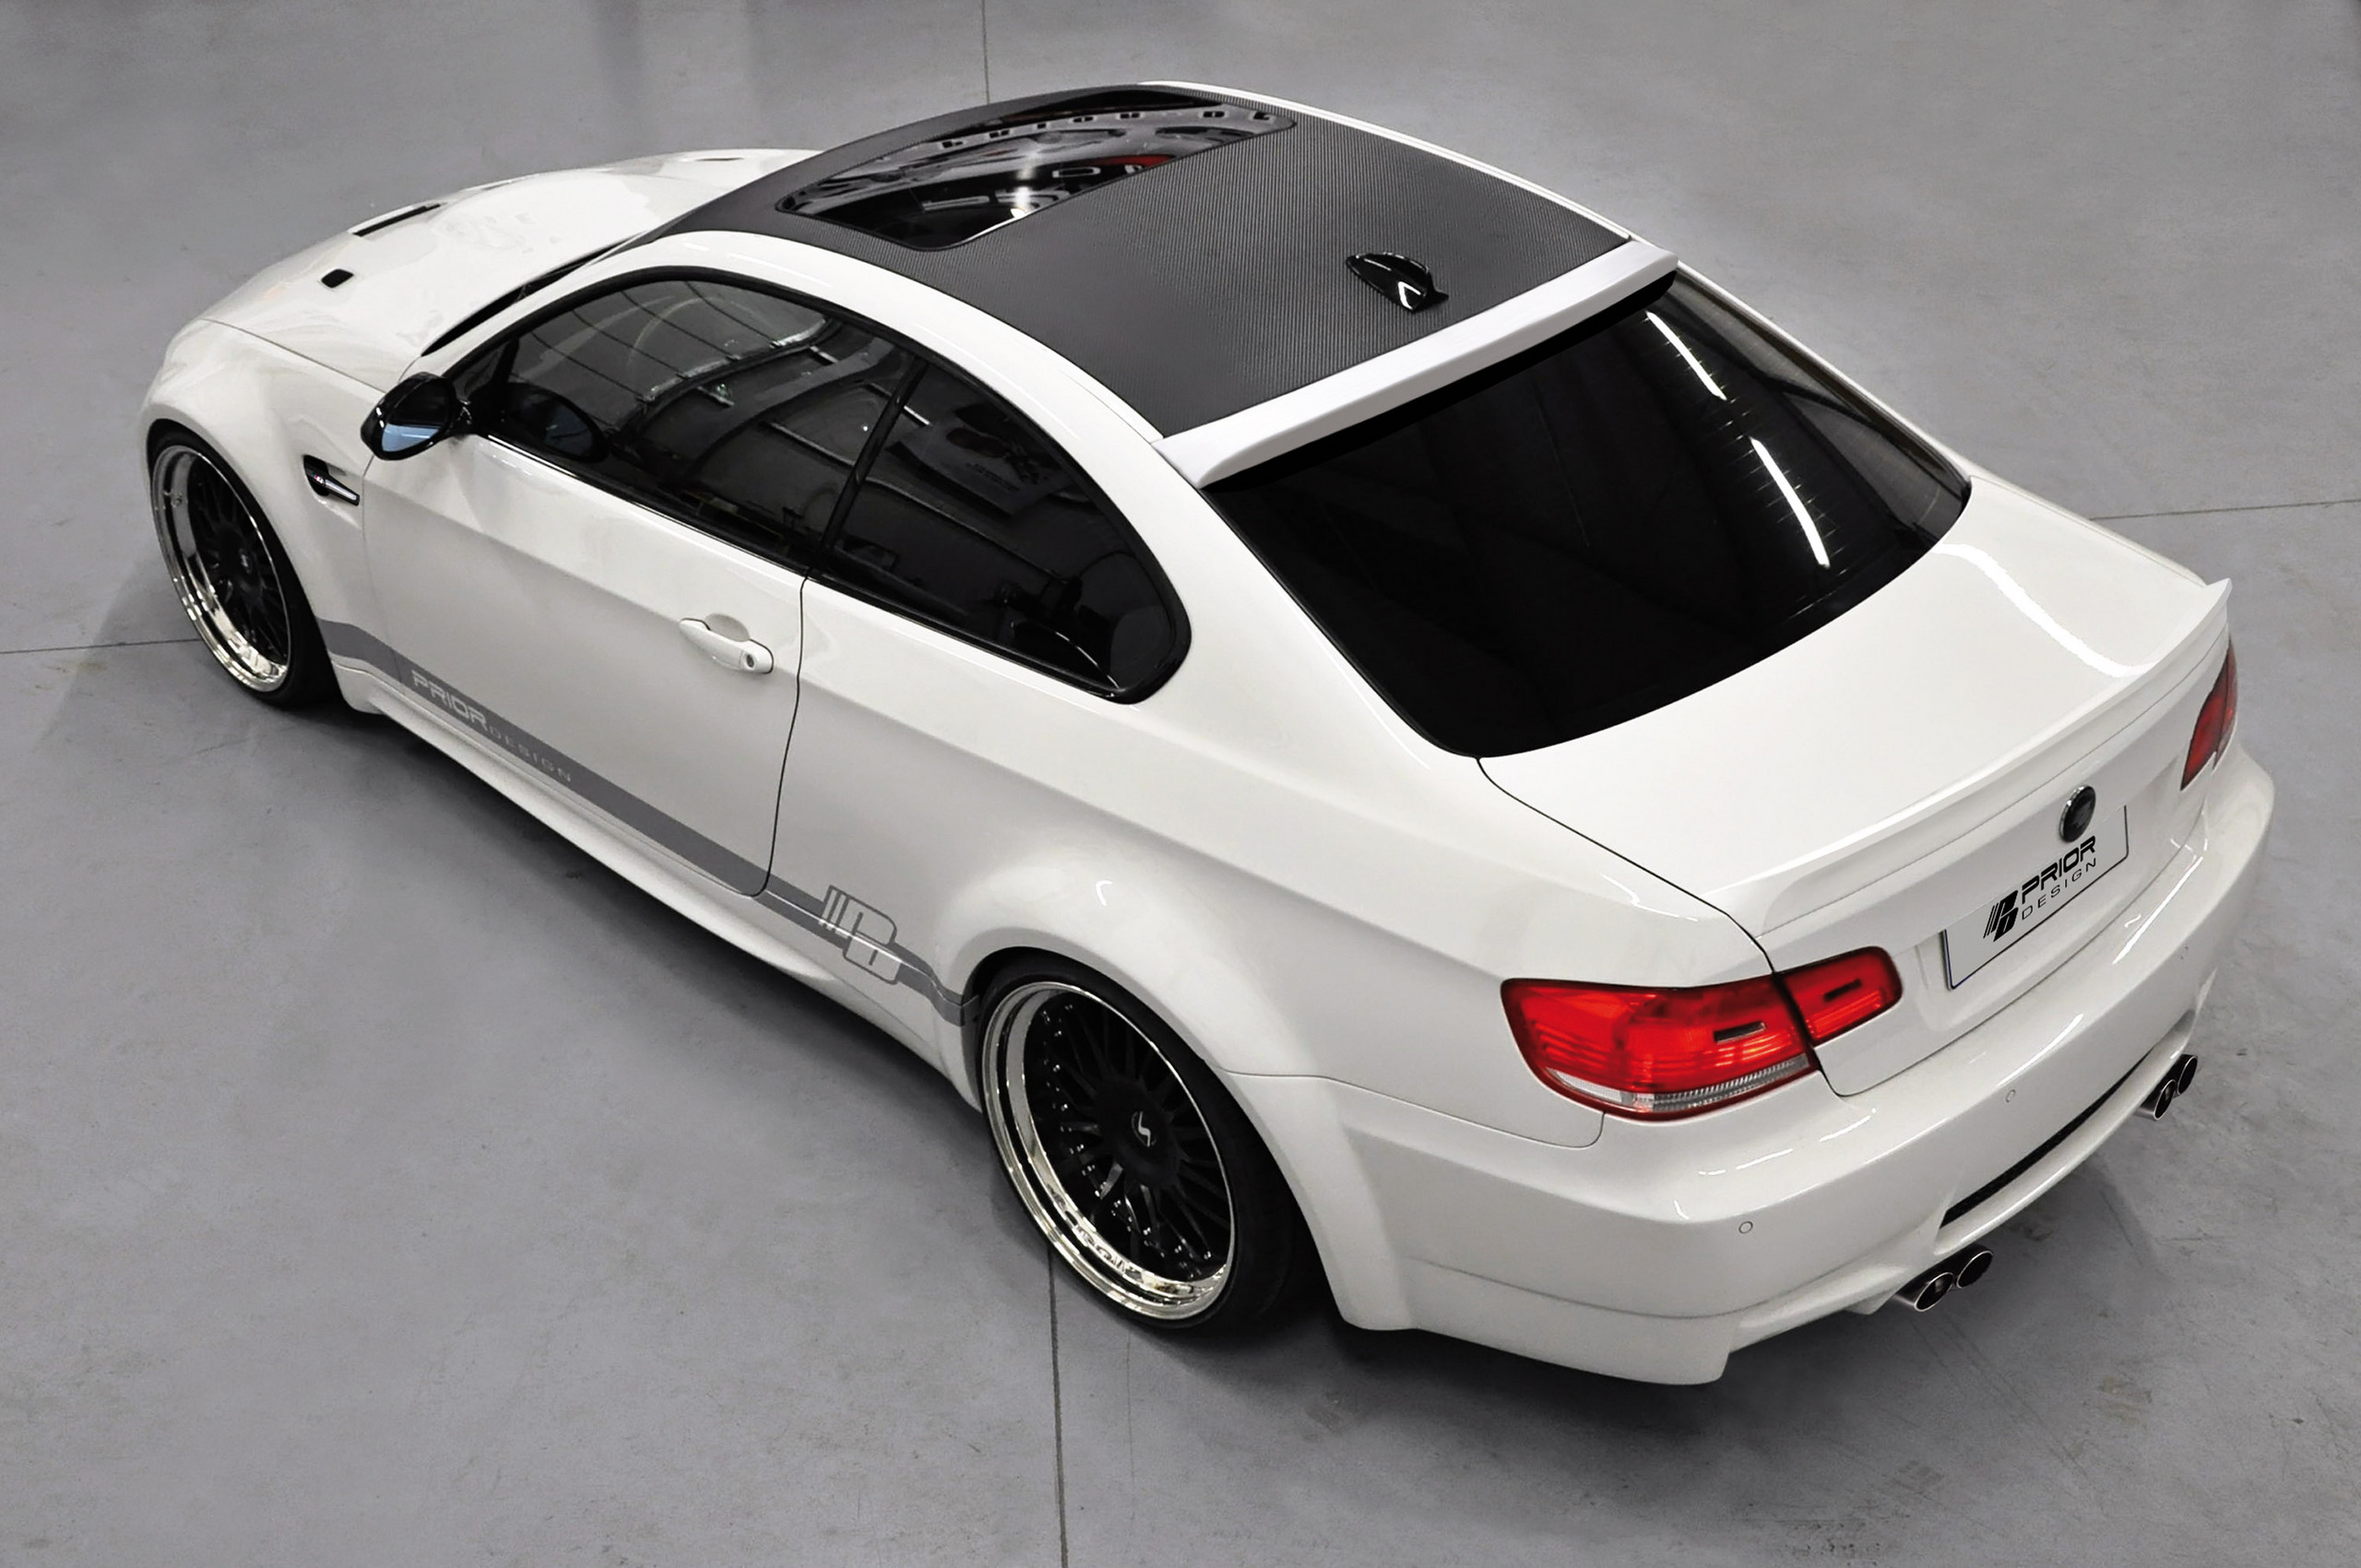 bmw e92 m3 by prior design bmw photo 26822410 fanpop. Black Bedroom Furniture Sets. Home Design Ideas